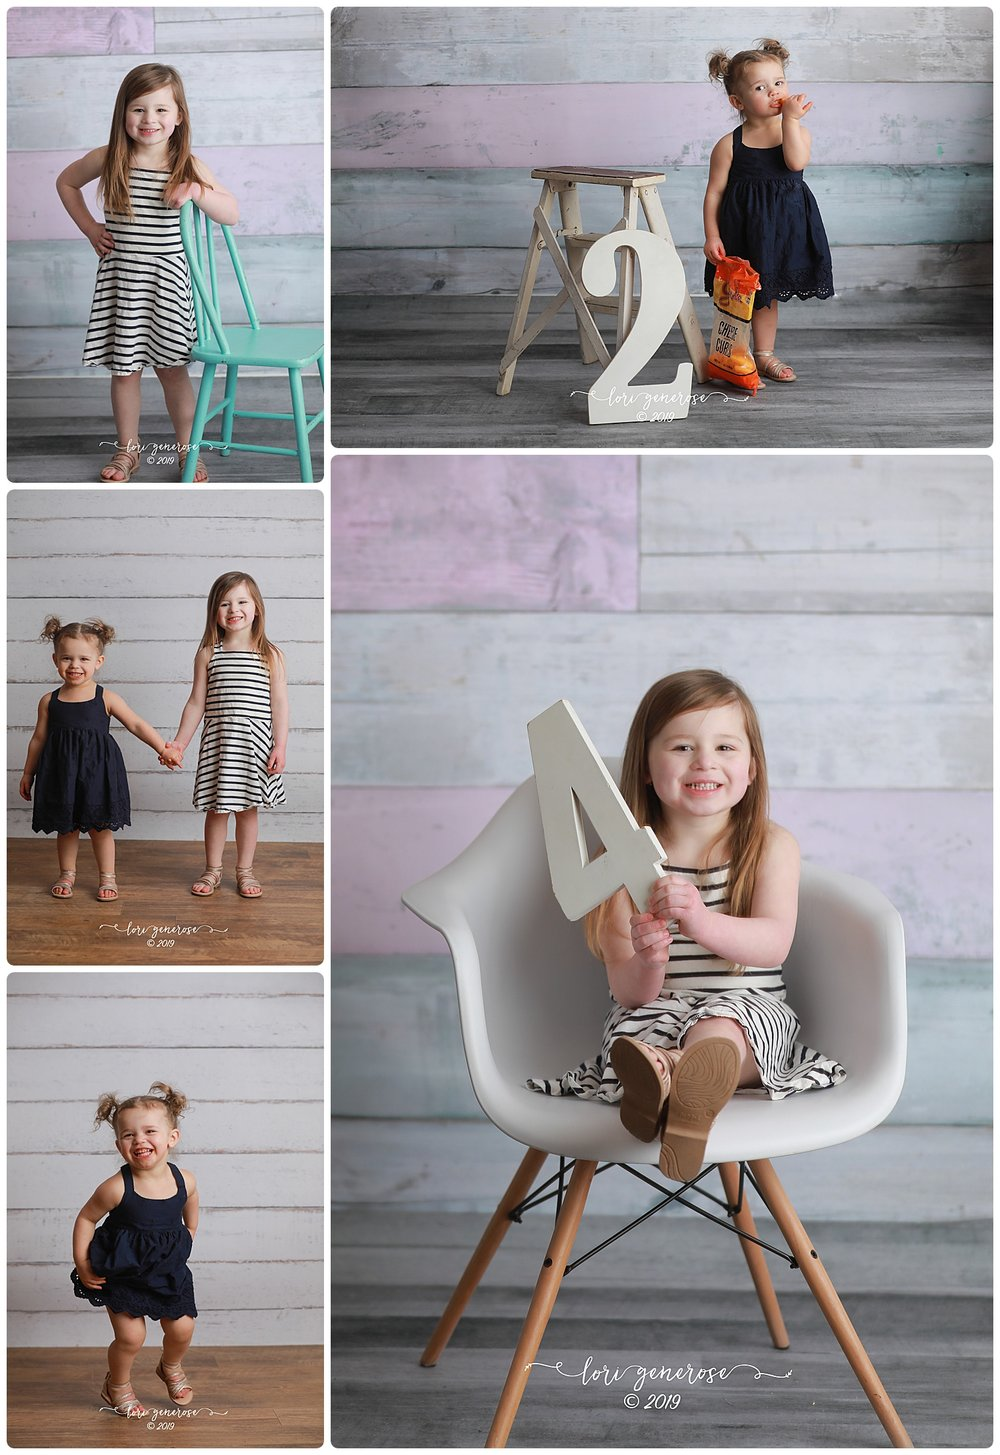 Good's Potato Chips , you've got two big fans over here... One cheese curl loving two year old and one happy photographer who'd rather have cheesy fingers than tears for the final images 😉 Amelia, you are amazing!!!! Two is tough but it gets easier, I promise!